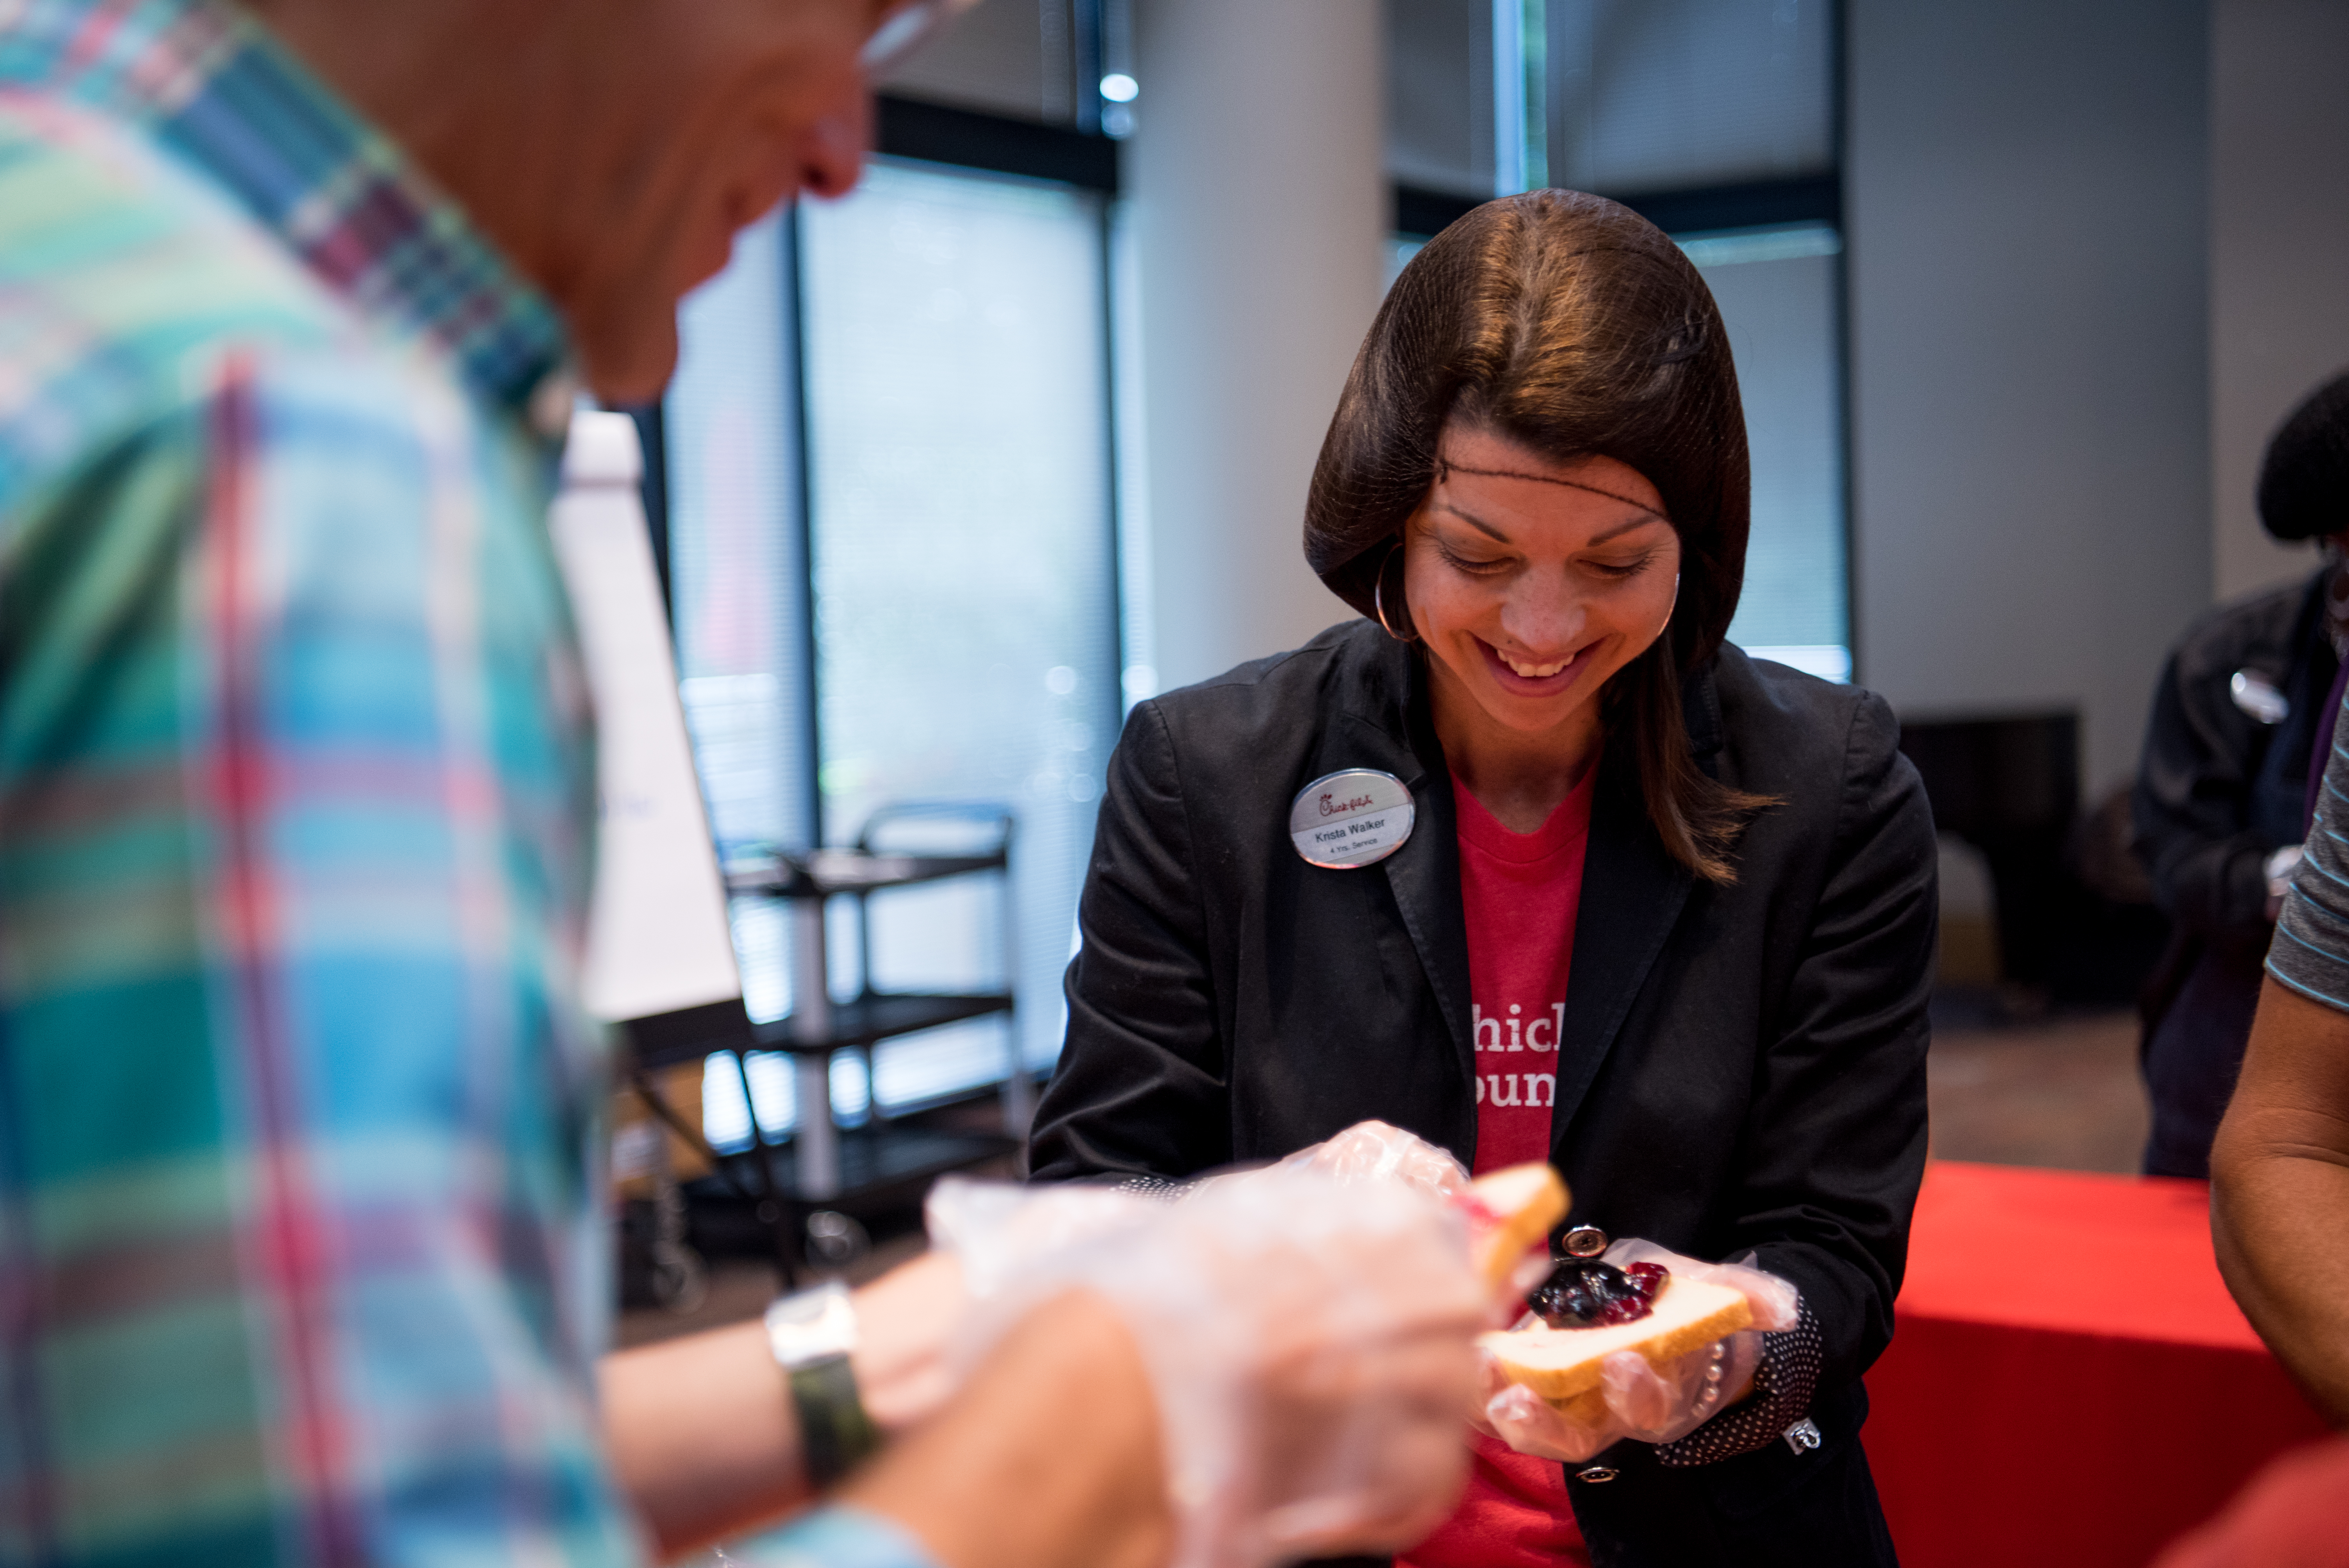 Chick-fil-A Support Center Staff Come Together to Feed Children in Need